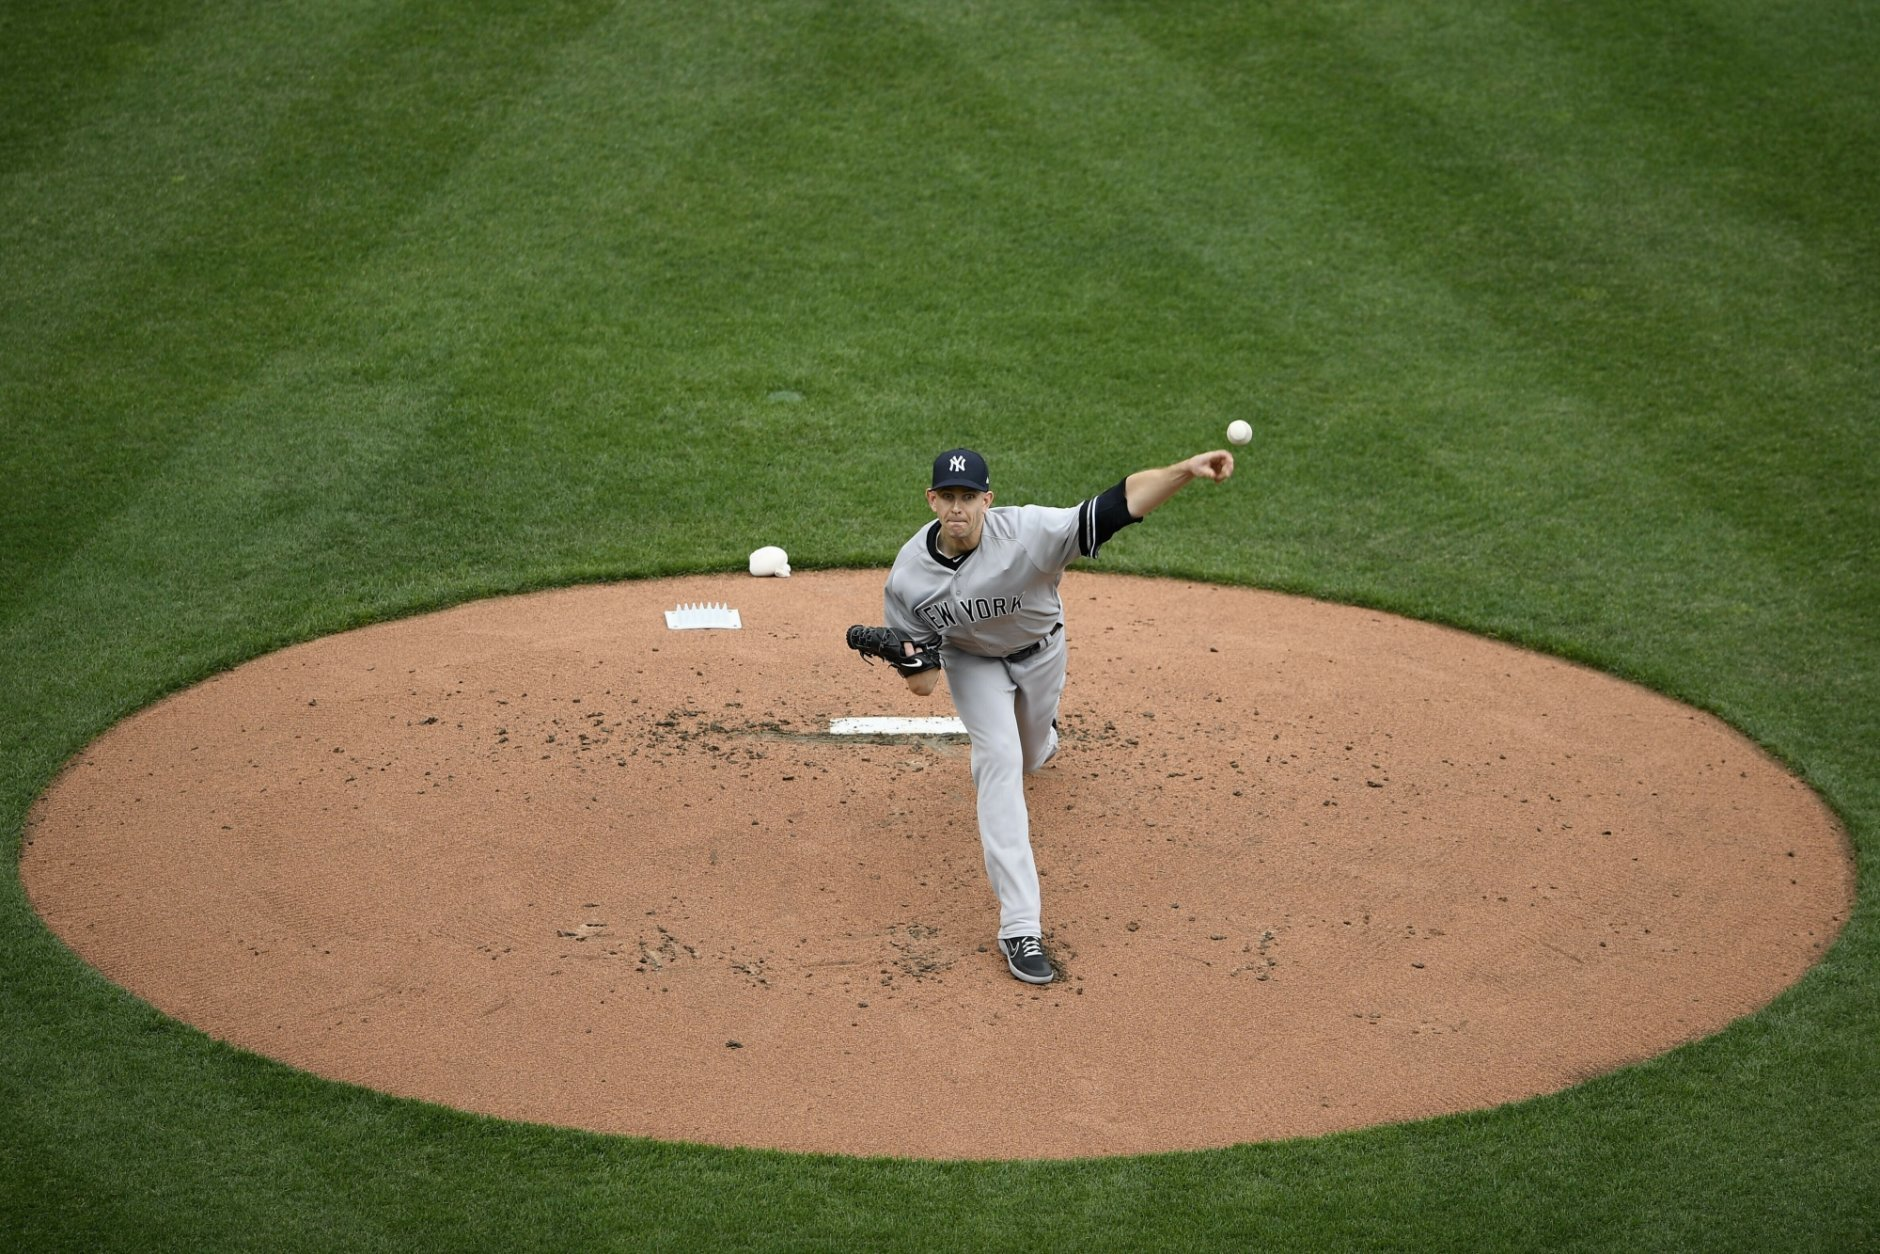 New York Yankees starting pitcher James Paxton delivers a pitch during the first inning of a baseball game against the Baltimore Orioles, Thursday, April 4, 2019, in Baltimore. (AP Photo/Nick Wass)